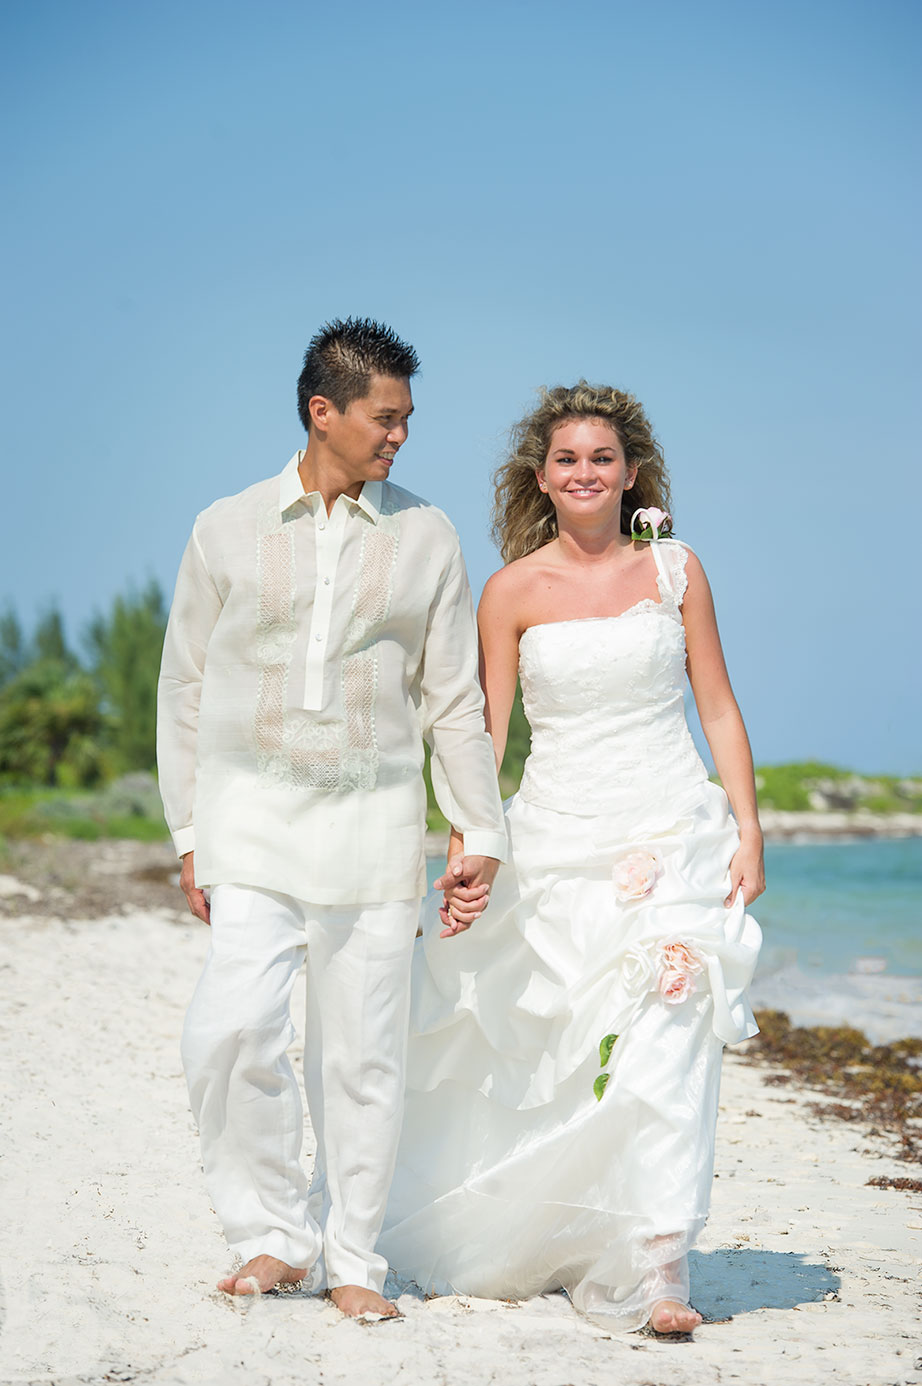 Bahamas Destination Wedding Packages  ChicBahamasWeddings